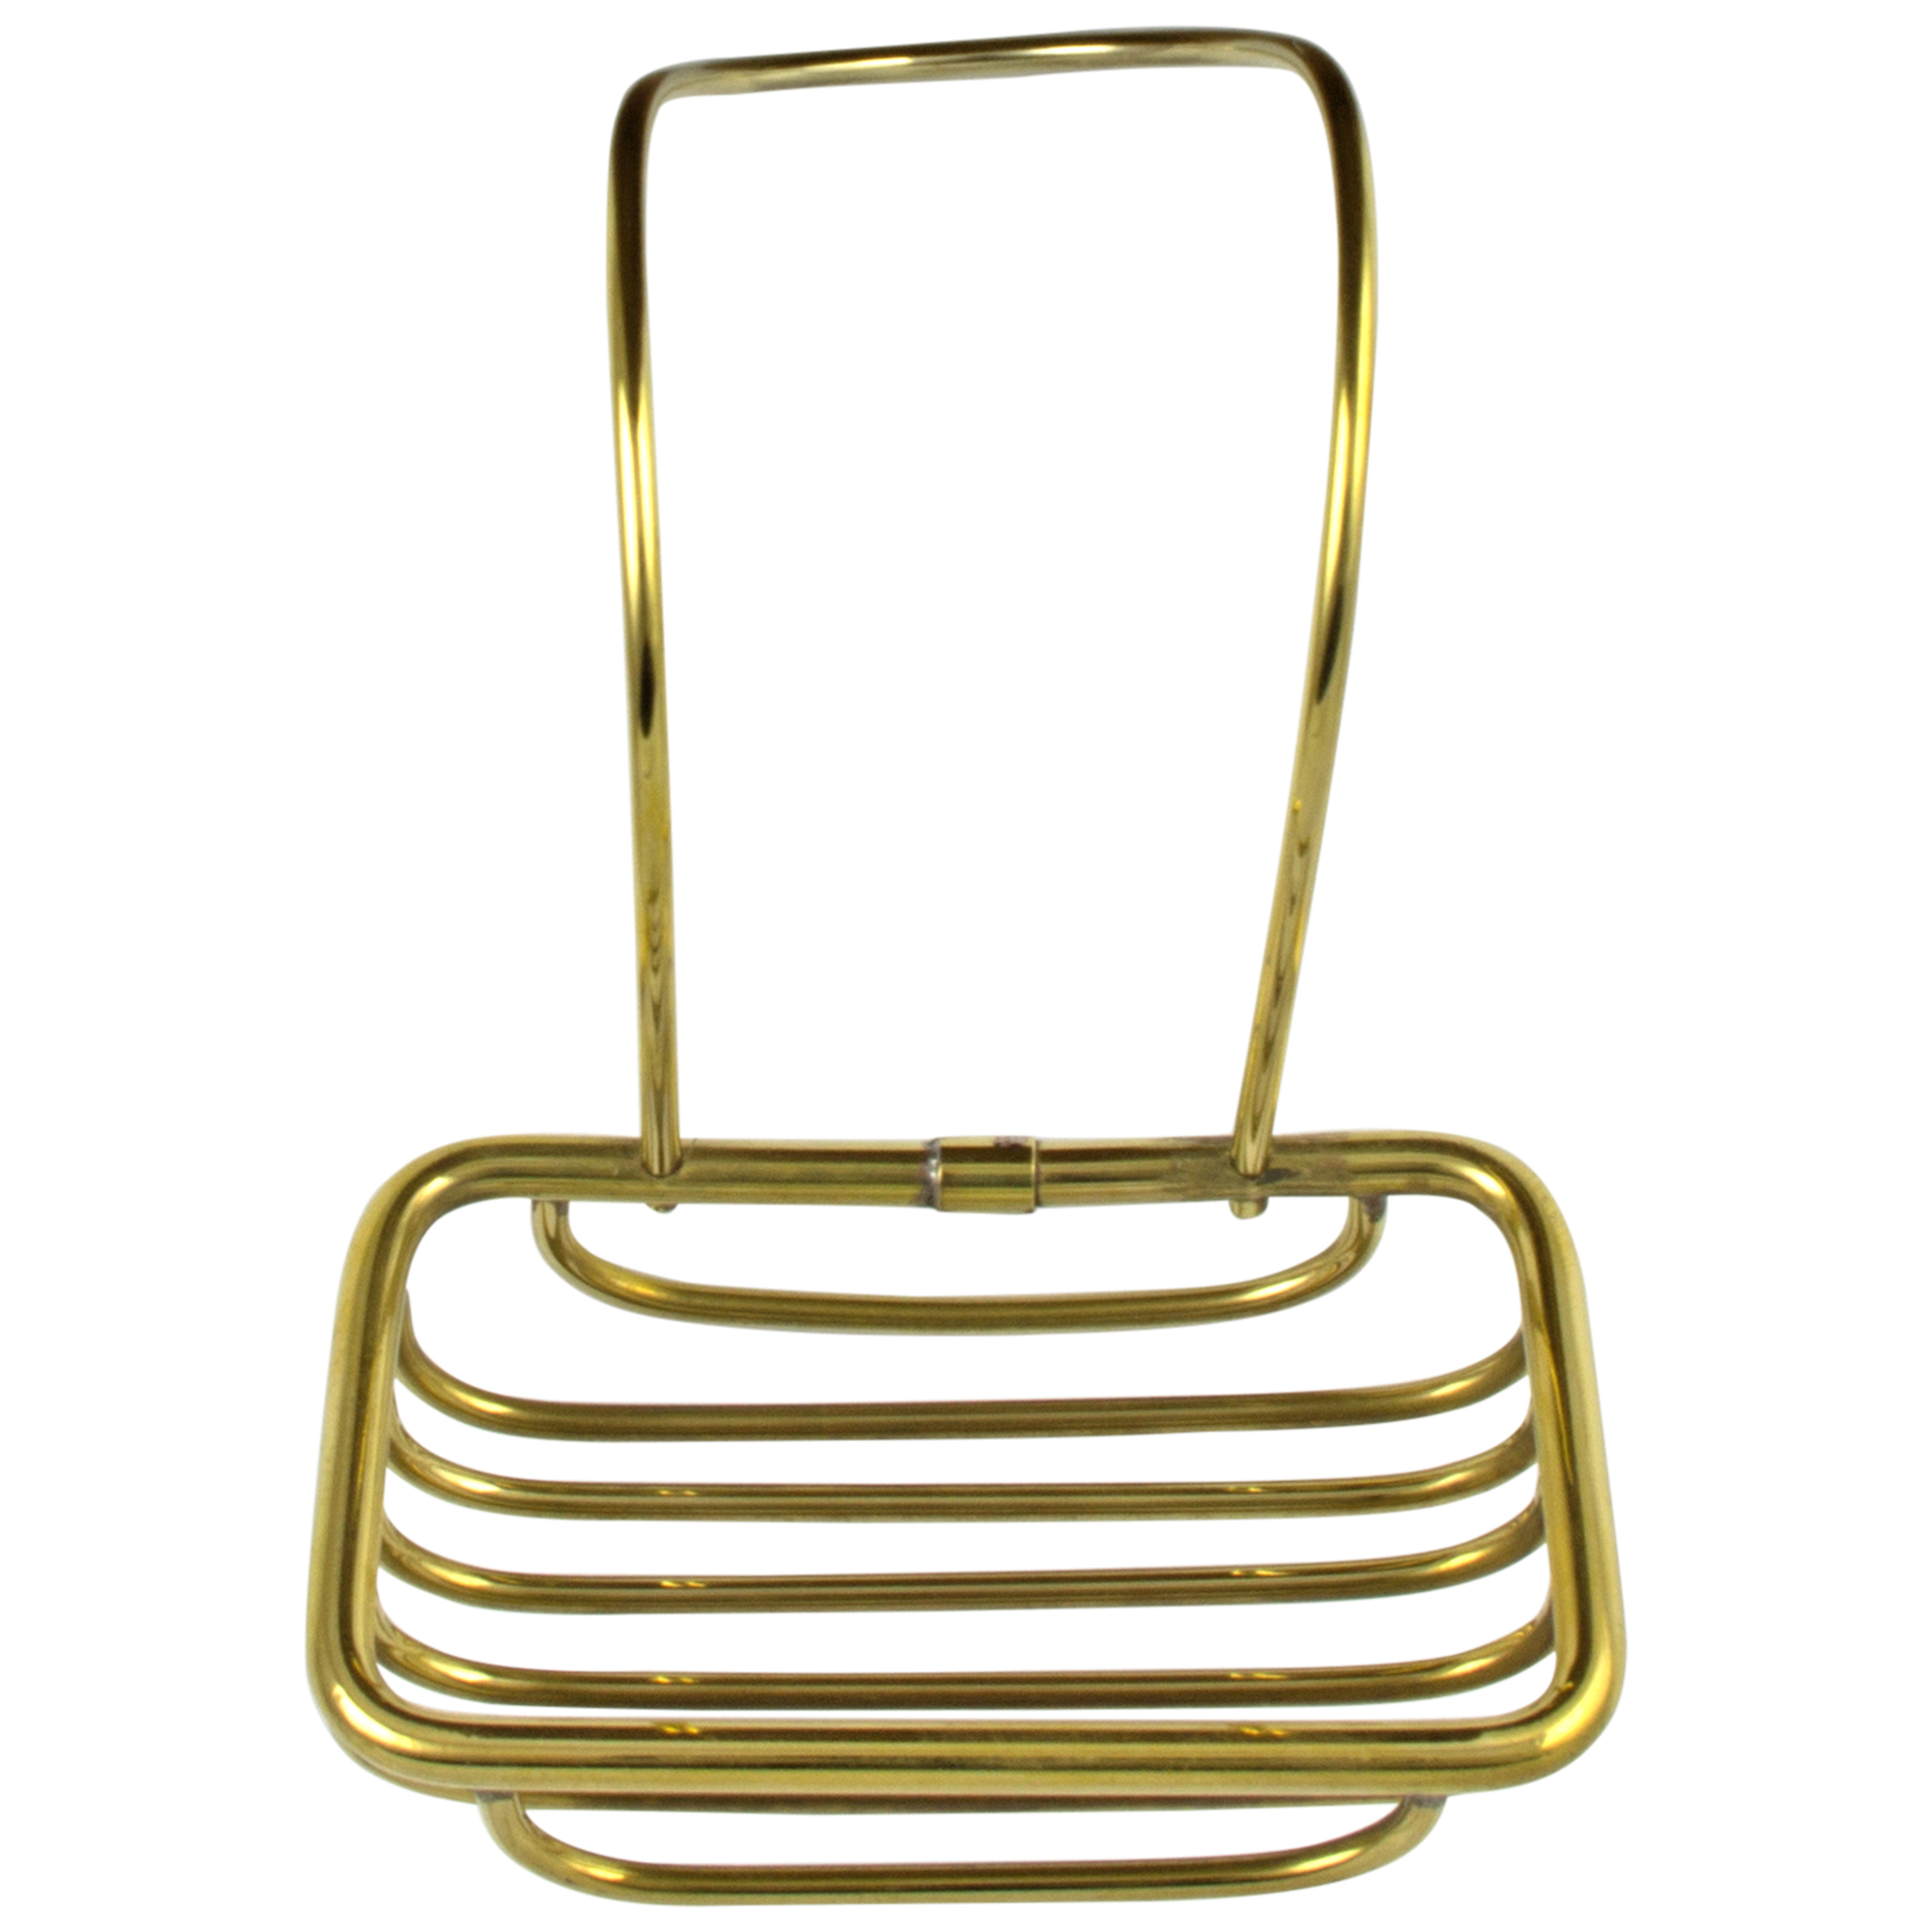 soap holder for over edge of clawfoot or any bath tub solid brass the kings bay. Black Bedroom Furniture Sets. Home Design Ideas